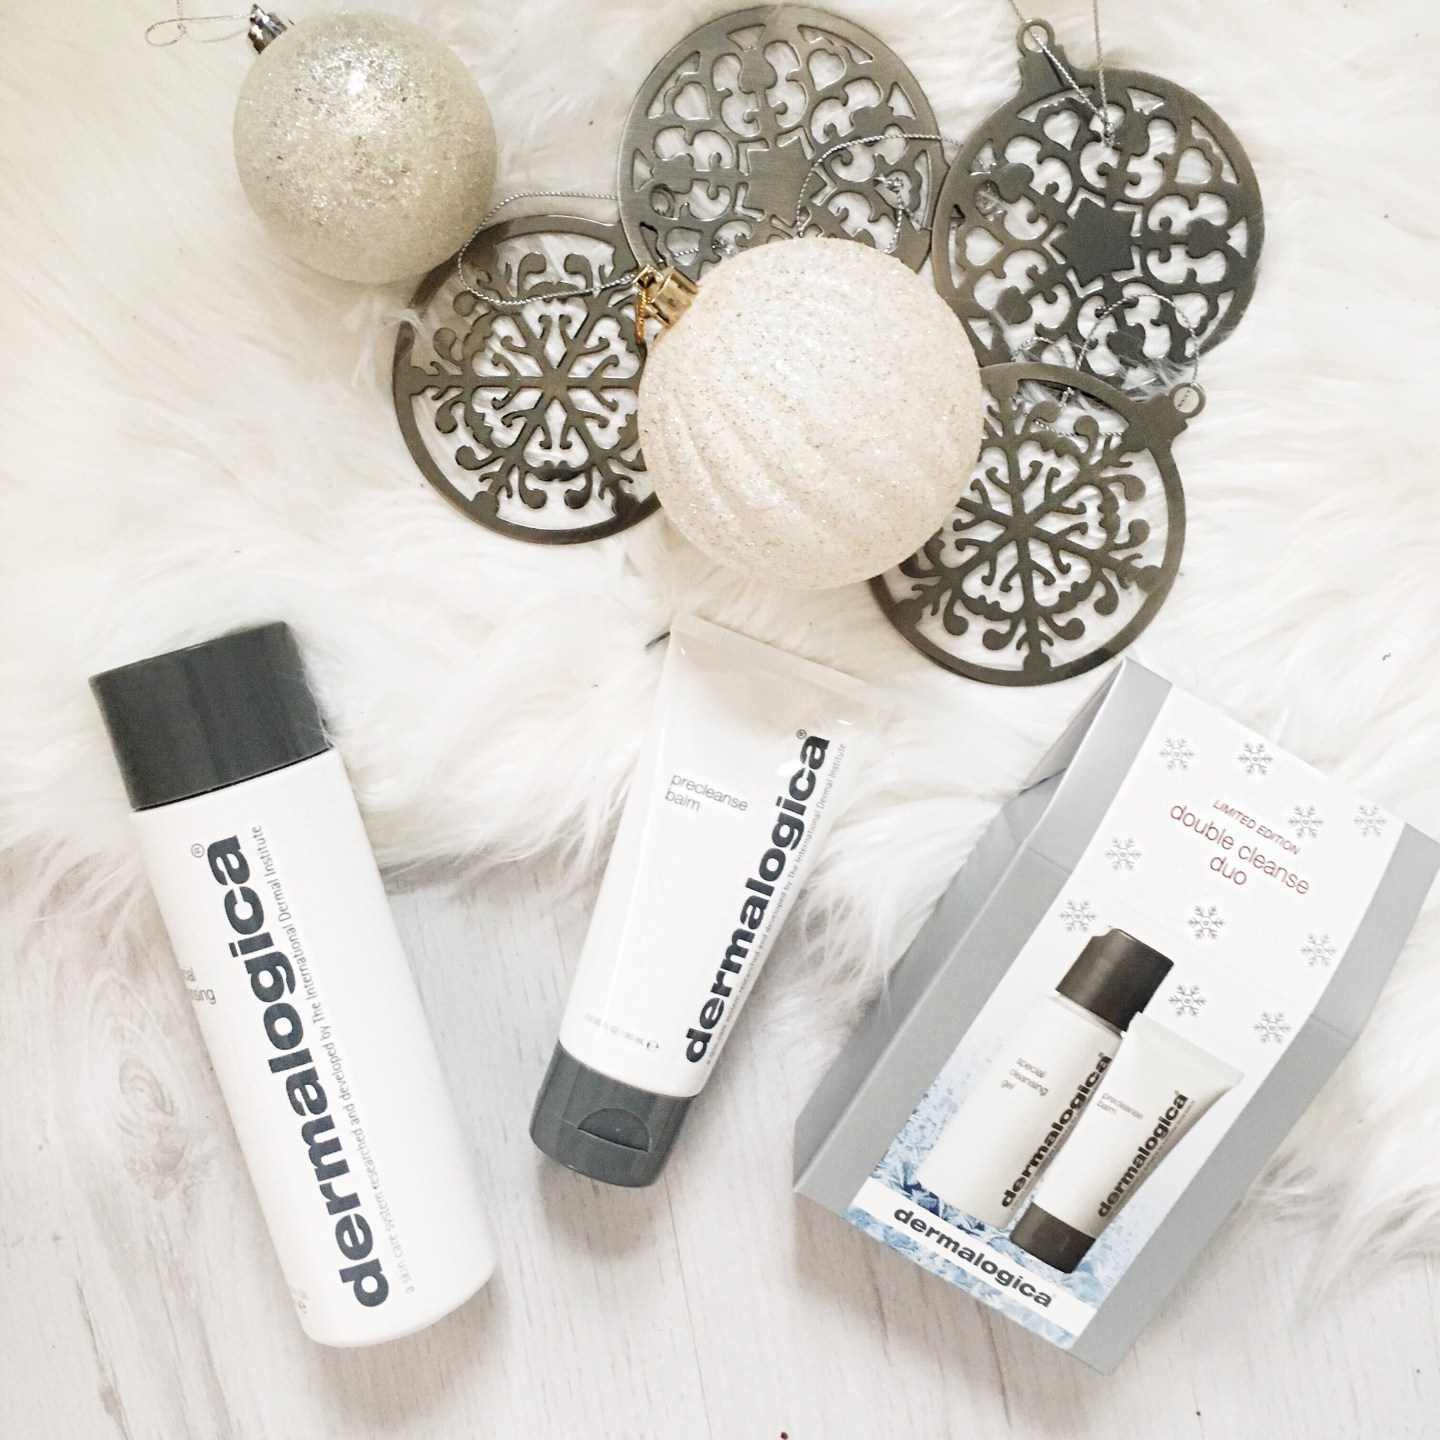 The Best Cleanser for Oily Skin: Dermalogica Double Cleanse Duo